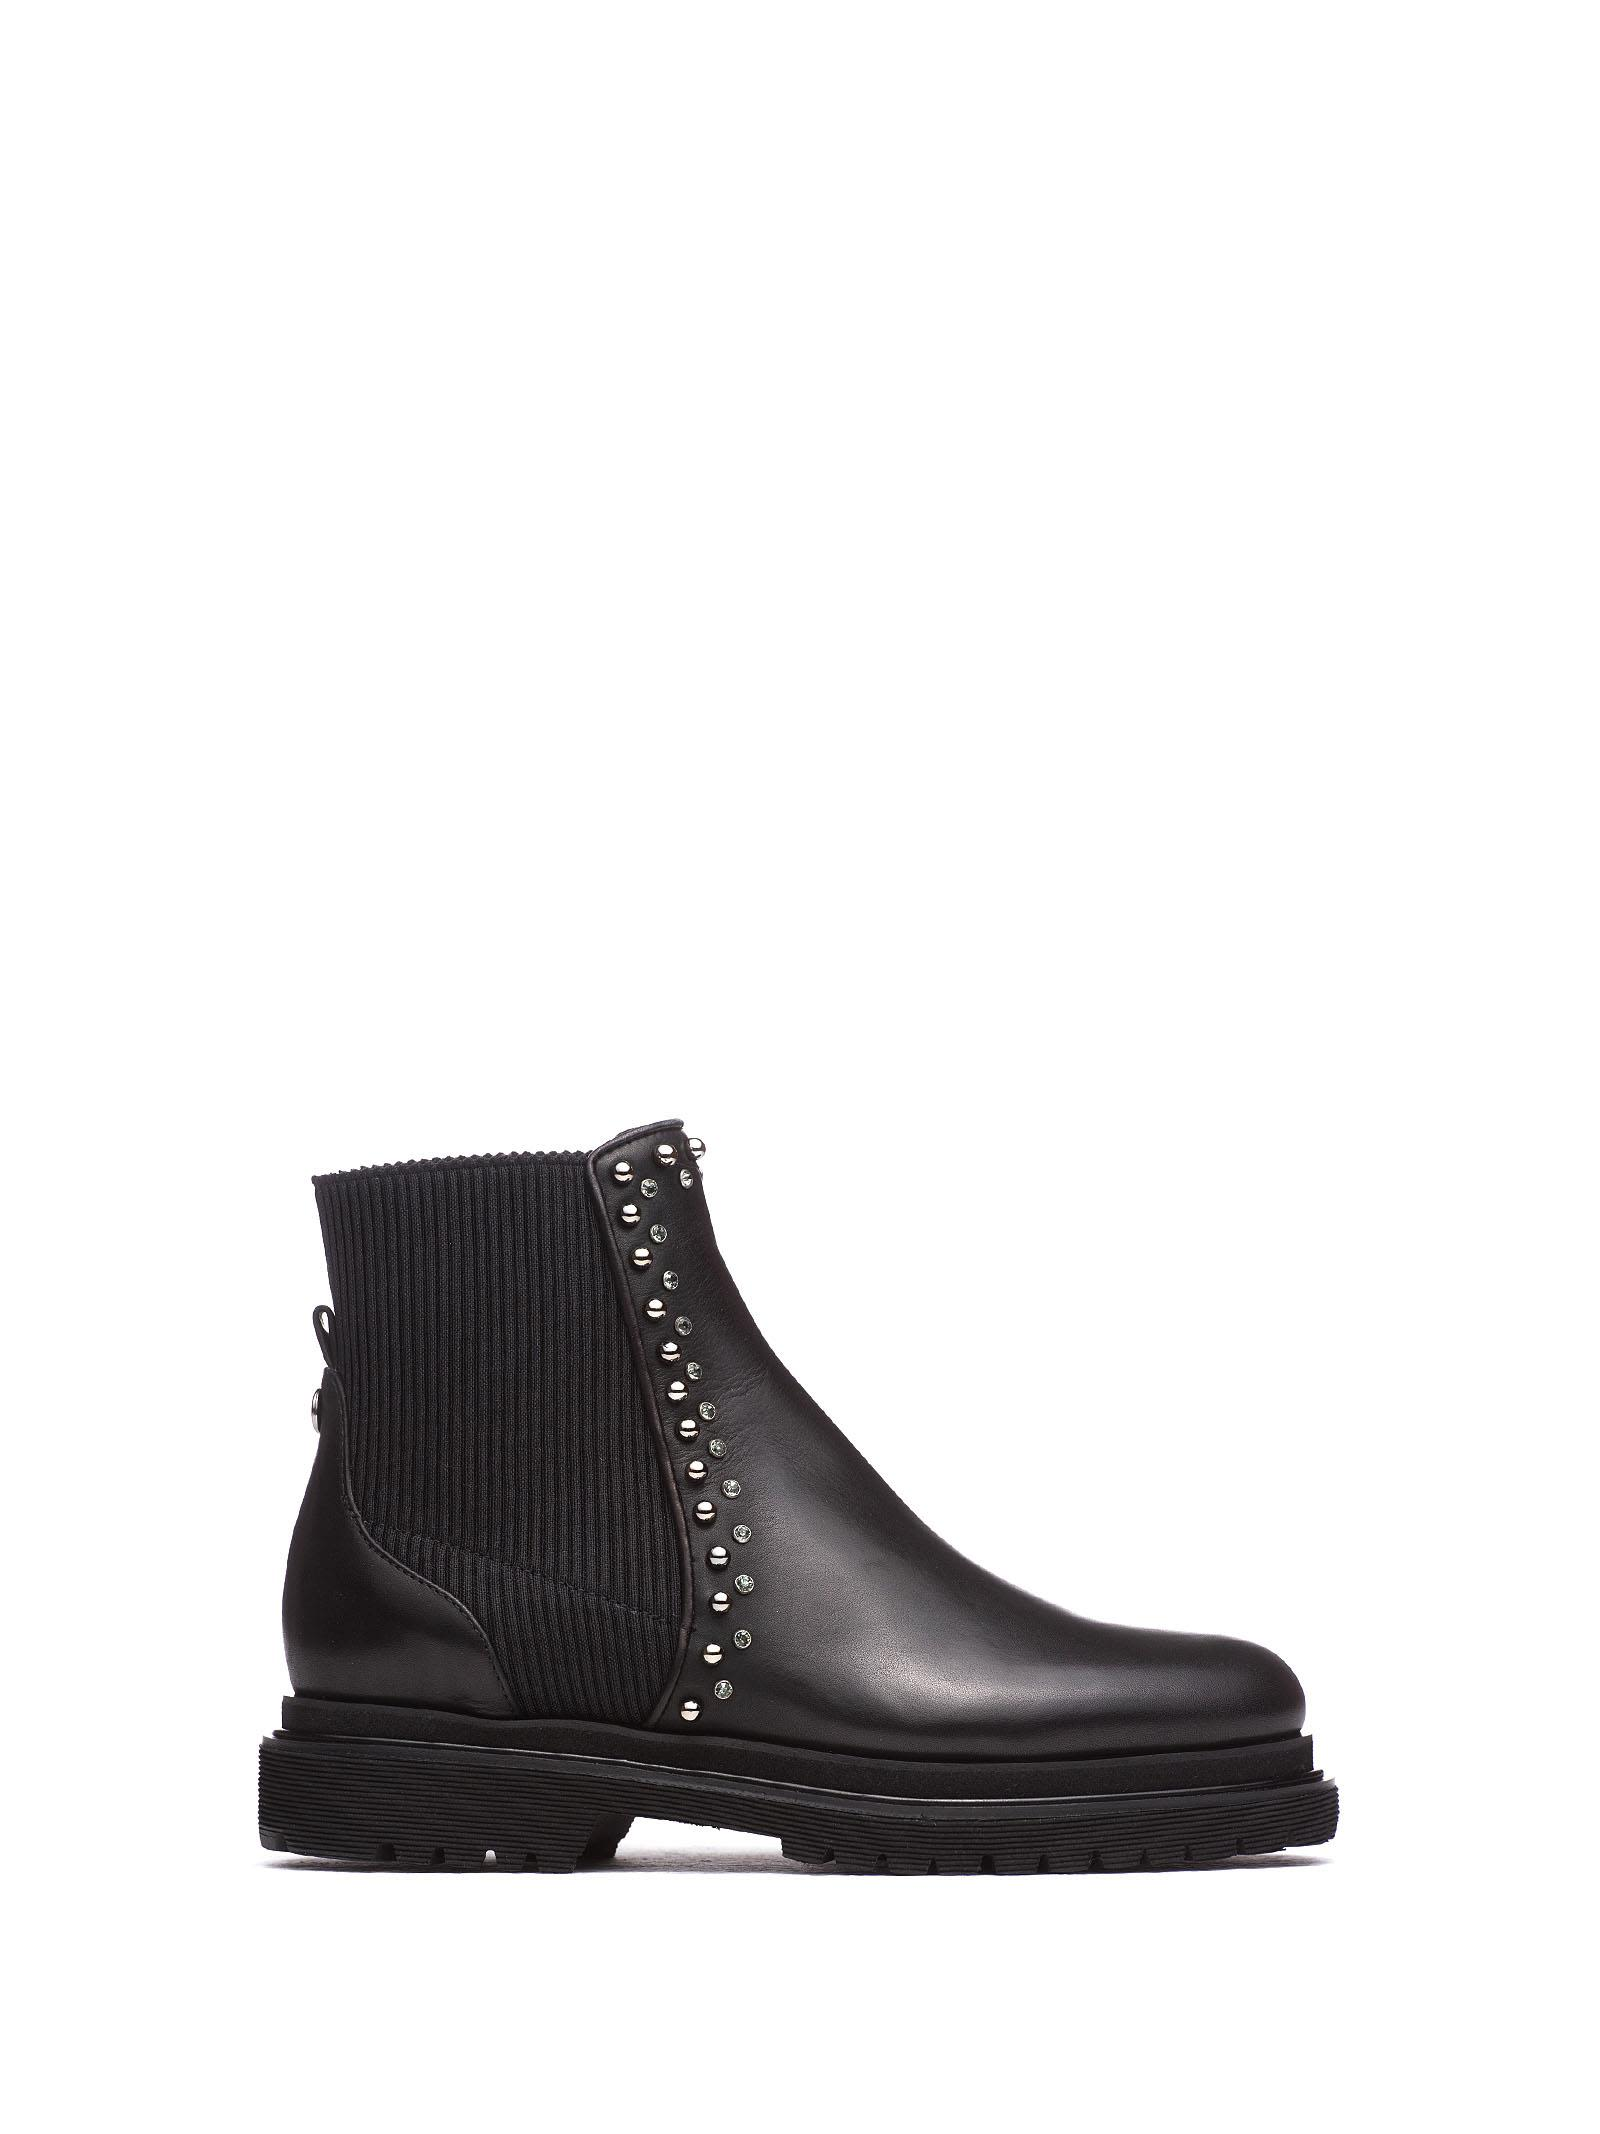 NINALILOU Black Ankle Boot With Studs in Nero